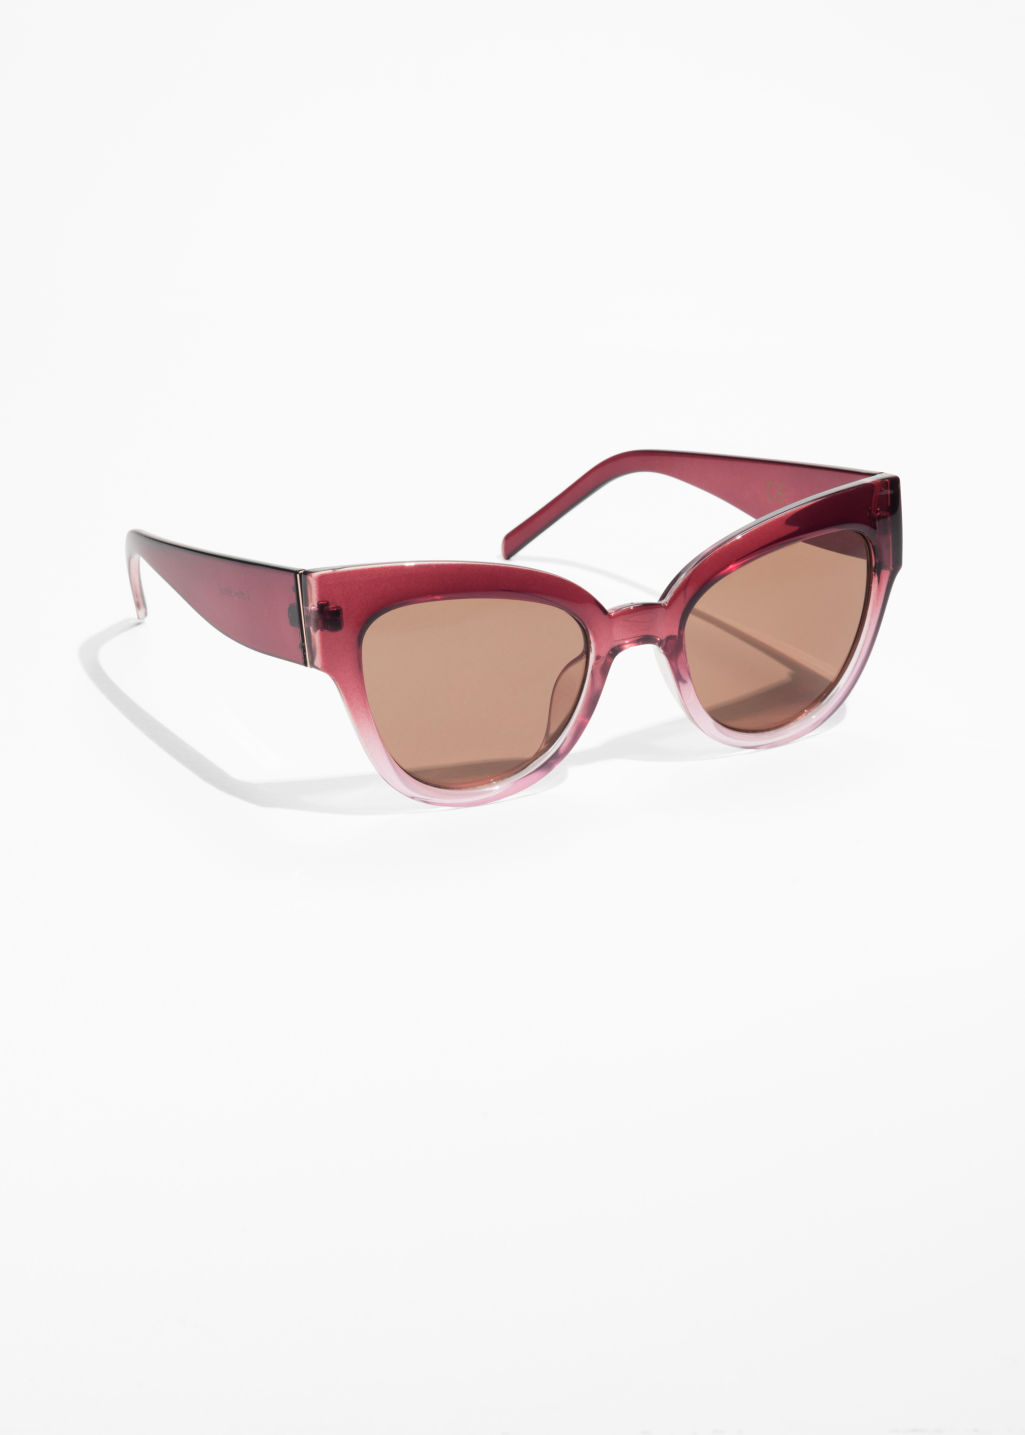 2e99dc5ced3d6 Cat Eye Sunglasses - Pink - Cat-eye -   Other Stories